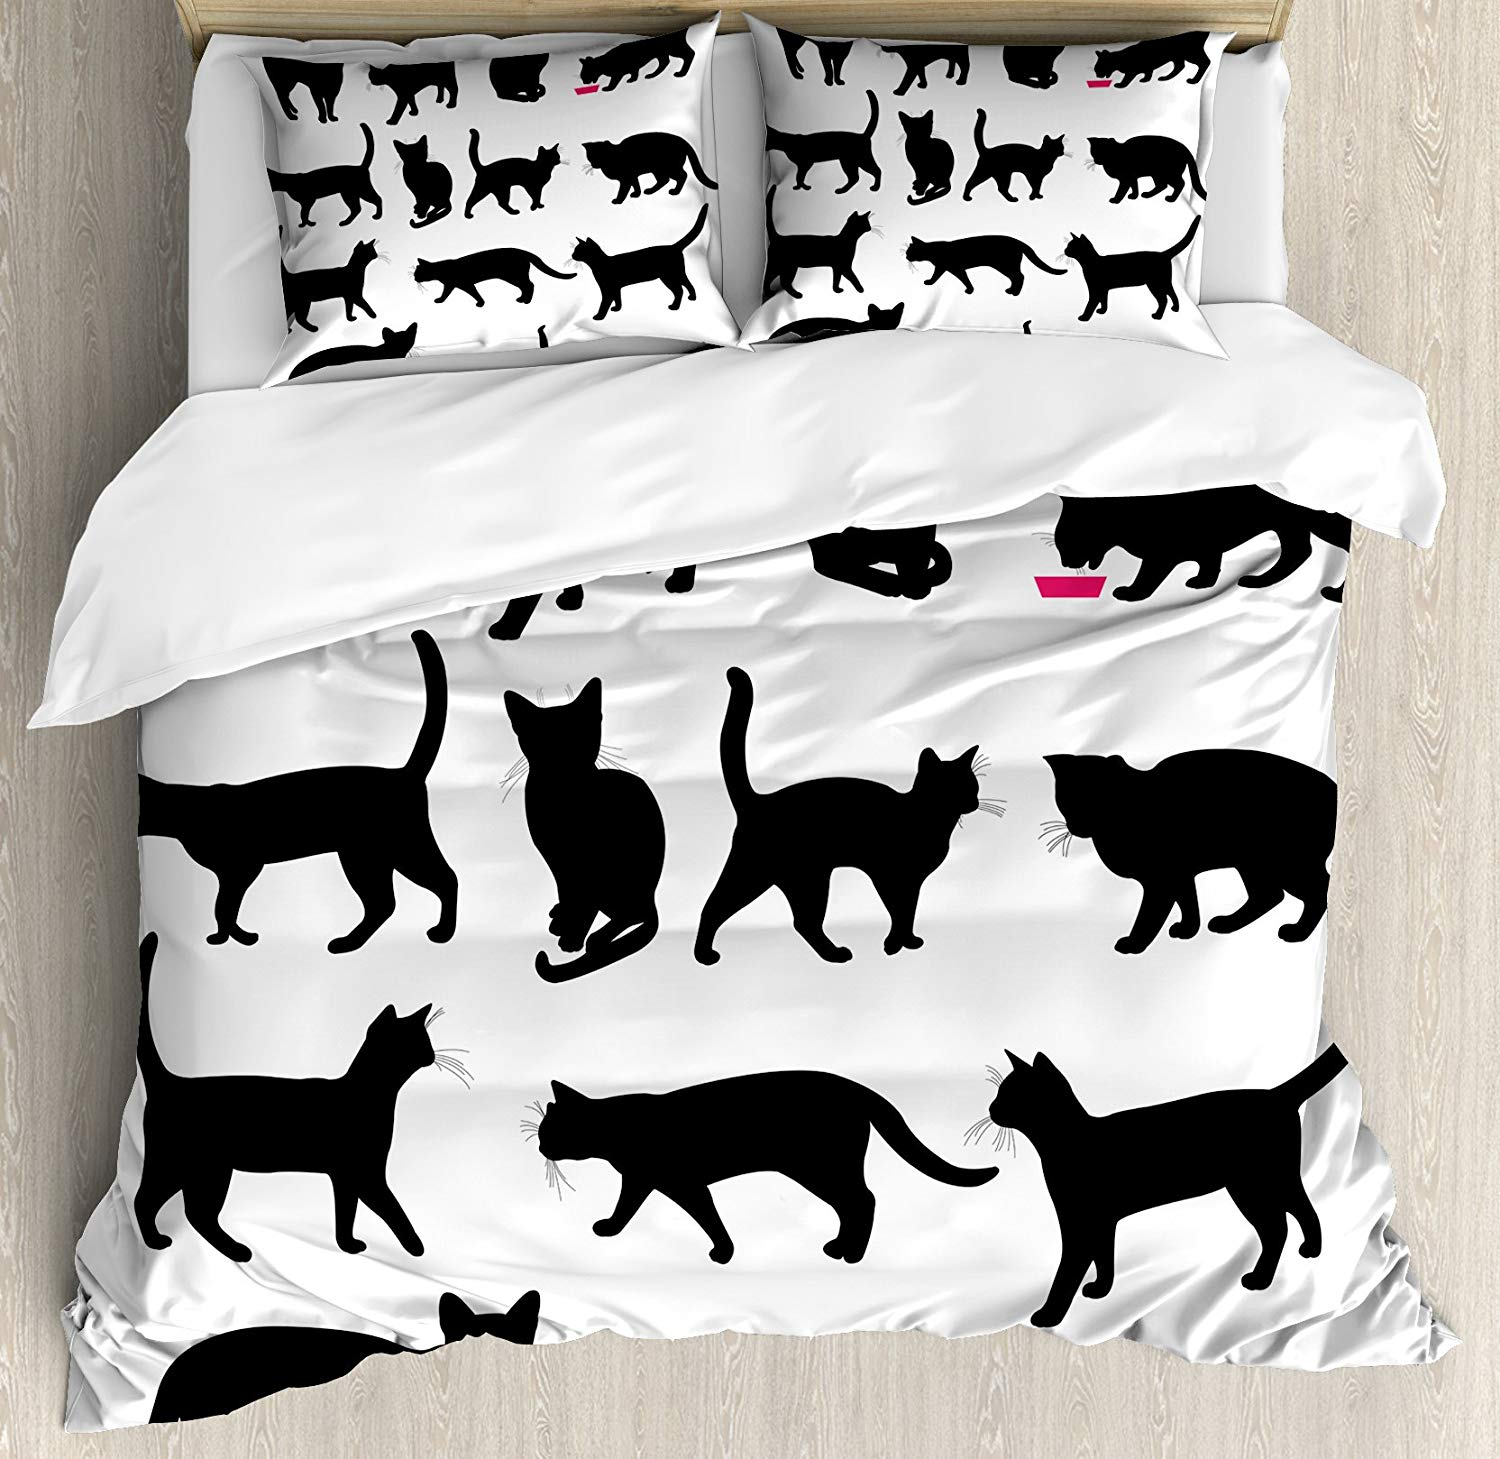 Cat Duvet Cover Set Black Cat Silhouettes in Different Poses Domestic Pets Kitty Paws Tail and Whiskers Decor 3/4pcs Bedding SetCat Duvet Cover Set Black Cat Silhouettes in Different Poses Domestic Pets Kitty Paws Tail and Whiskers Decor 3/4pcs Bedding Set